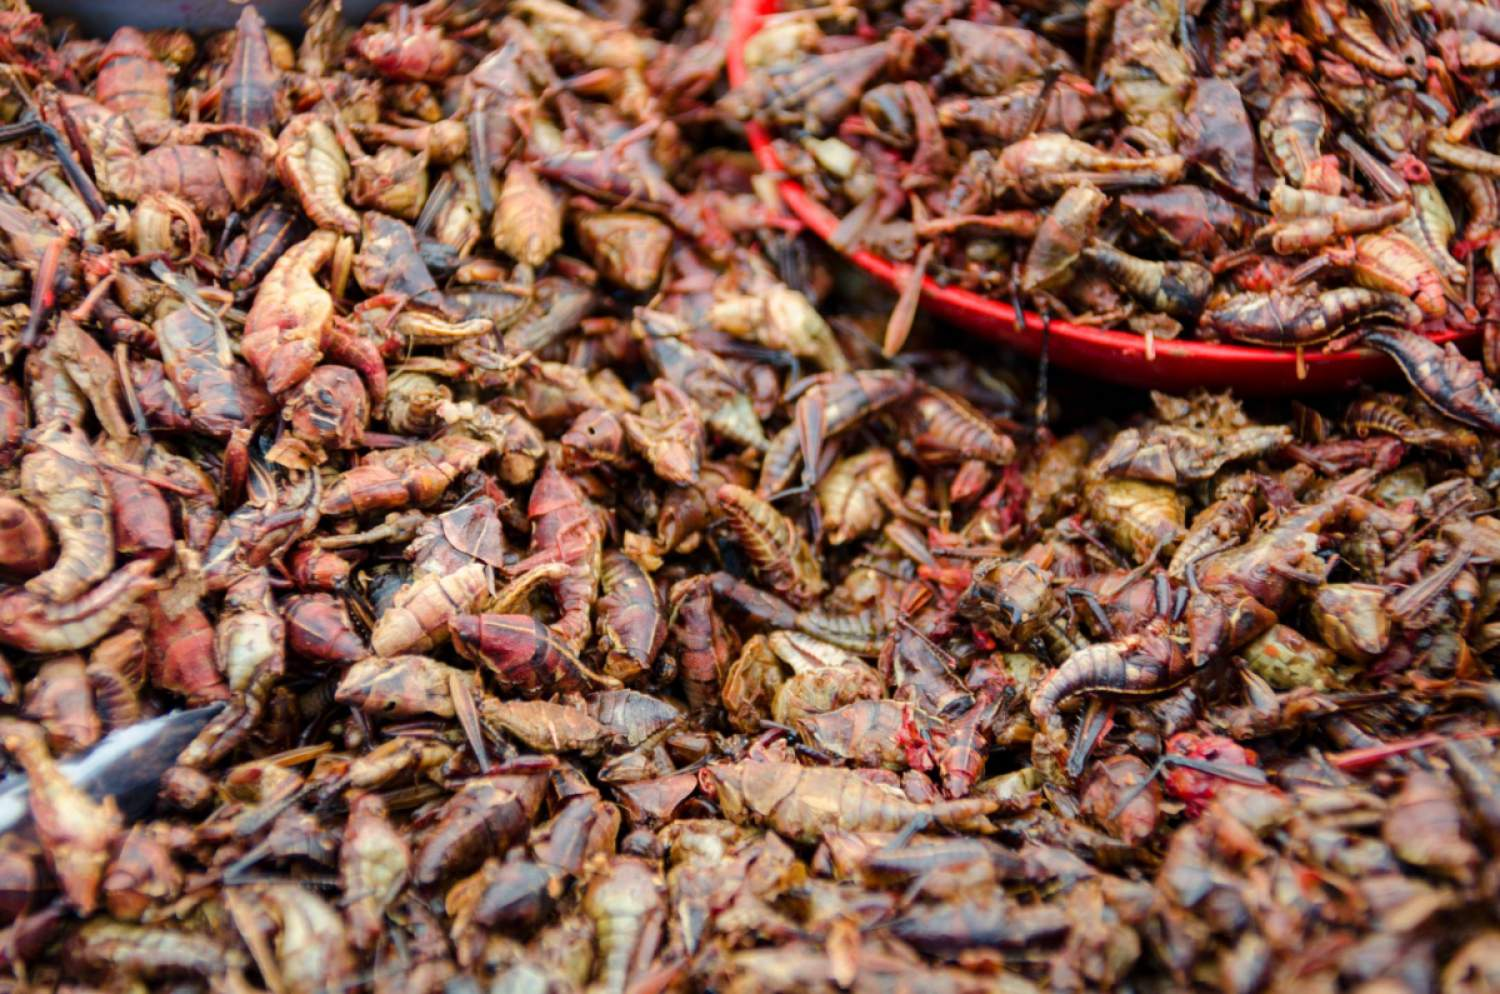 Edible insects, Oaxaca